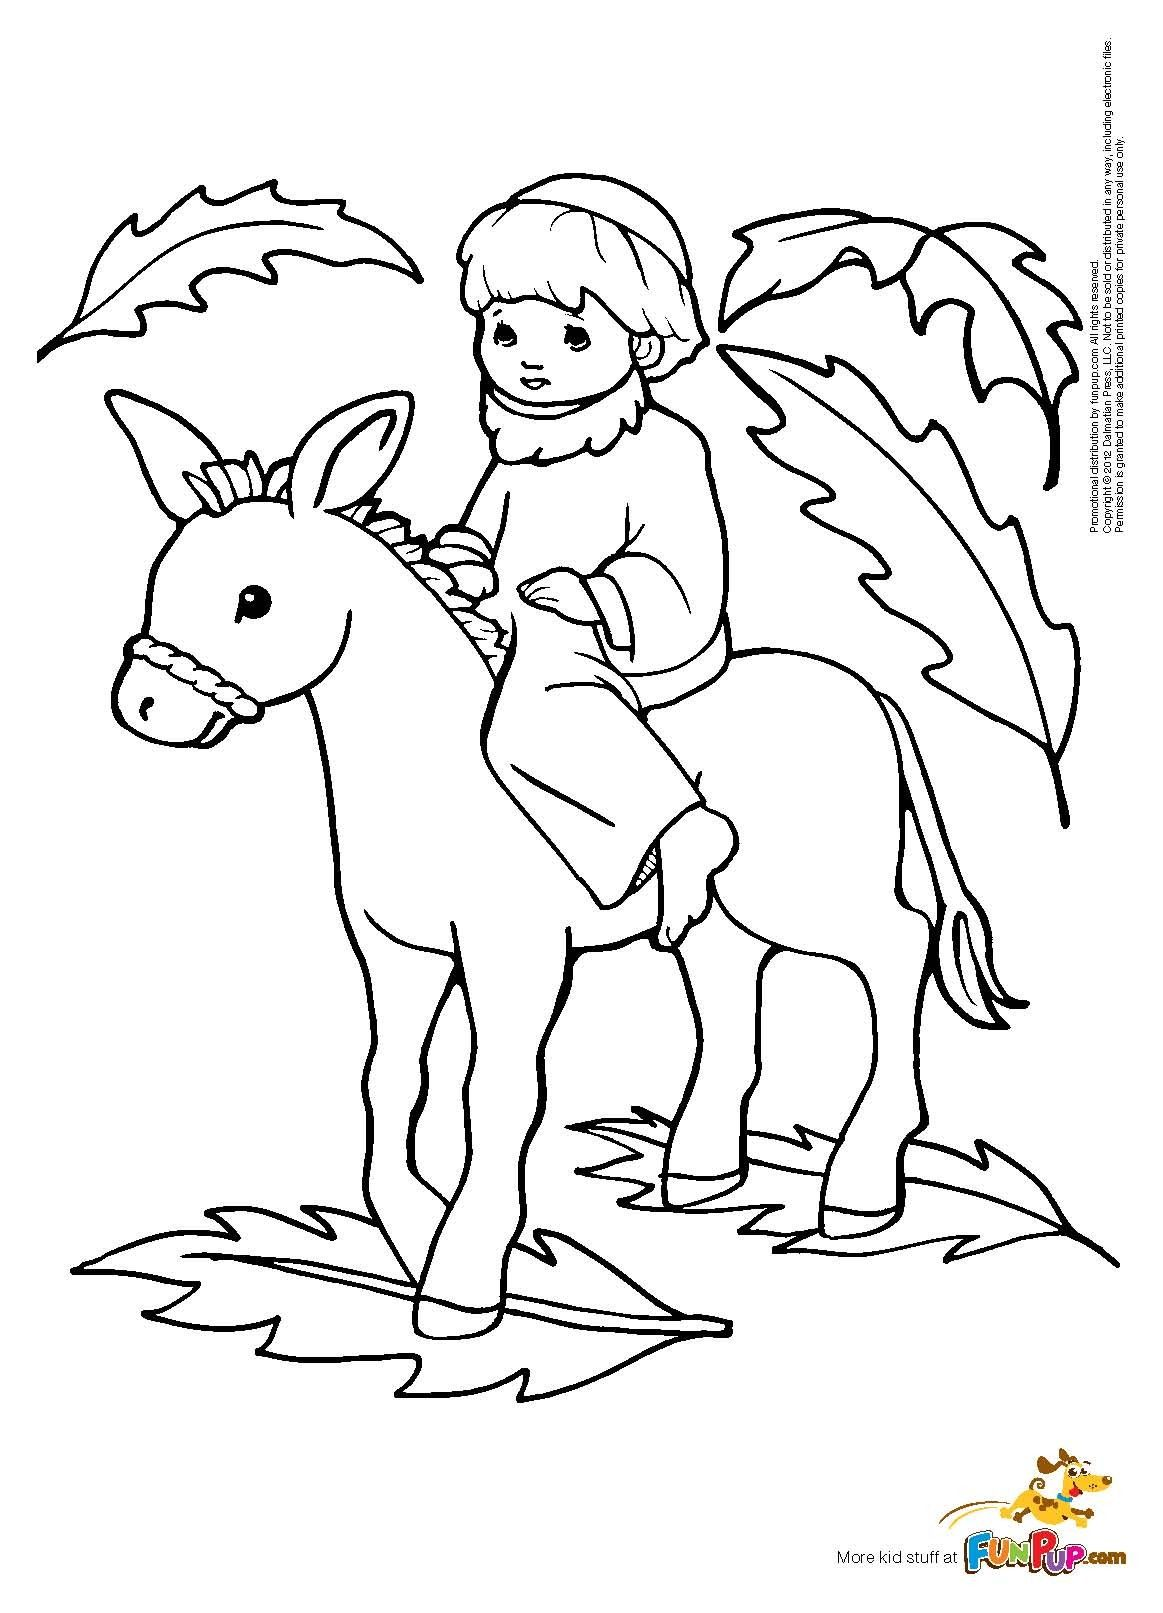 Palm Sunday Coloring Page | Free Printable Coloring Pages ...